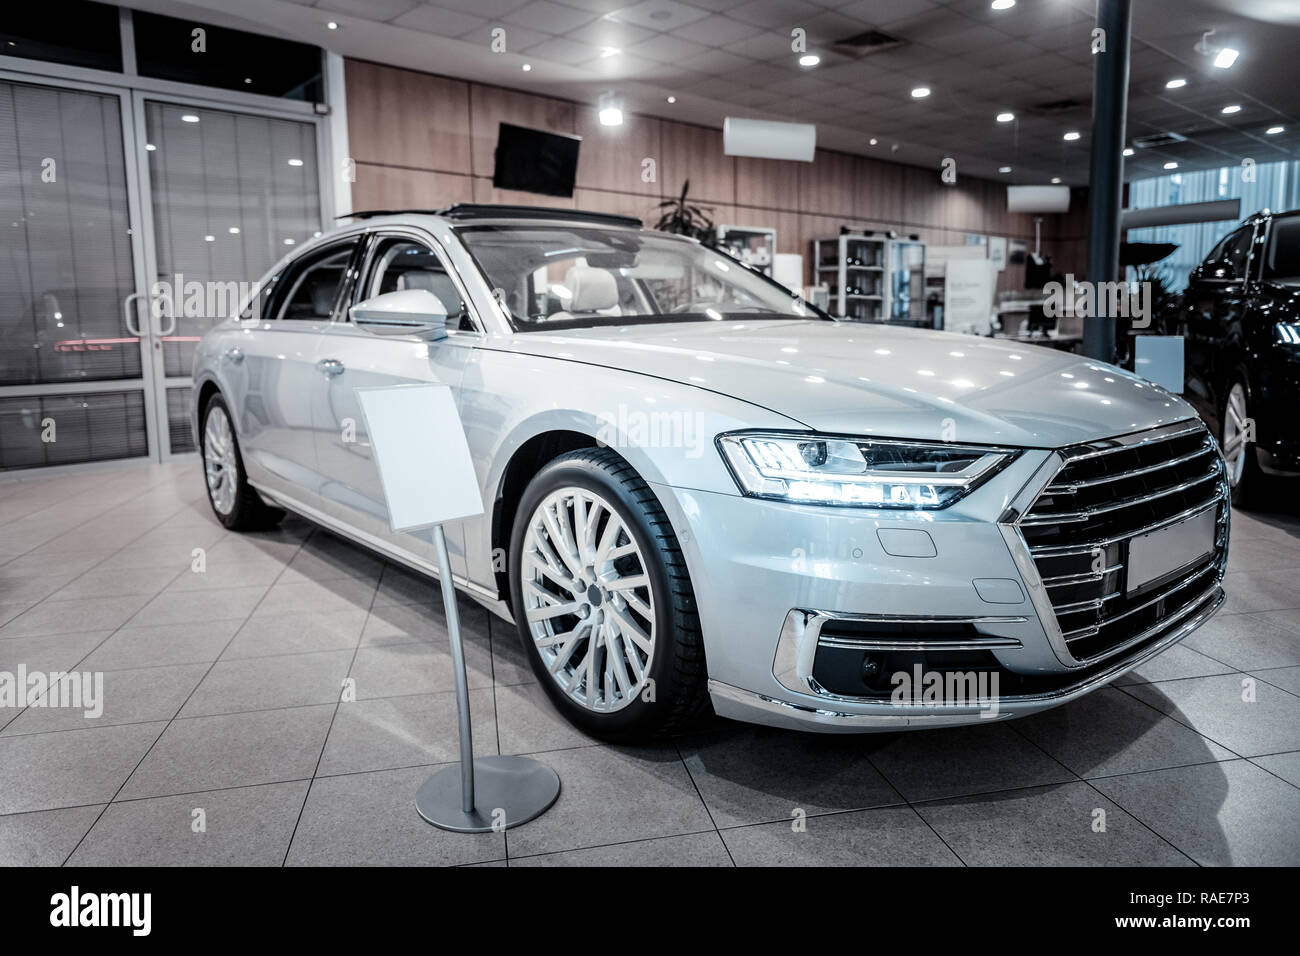 White passenger car being for disposal in nice modern car showroom - Stock Image